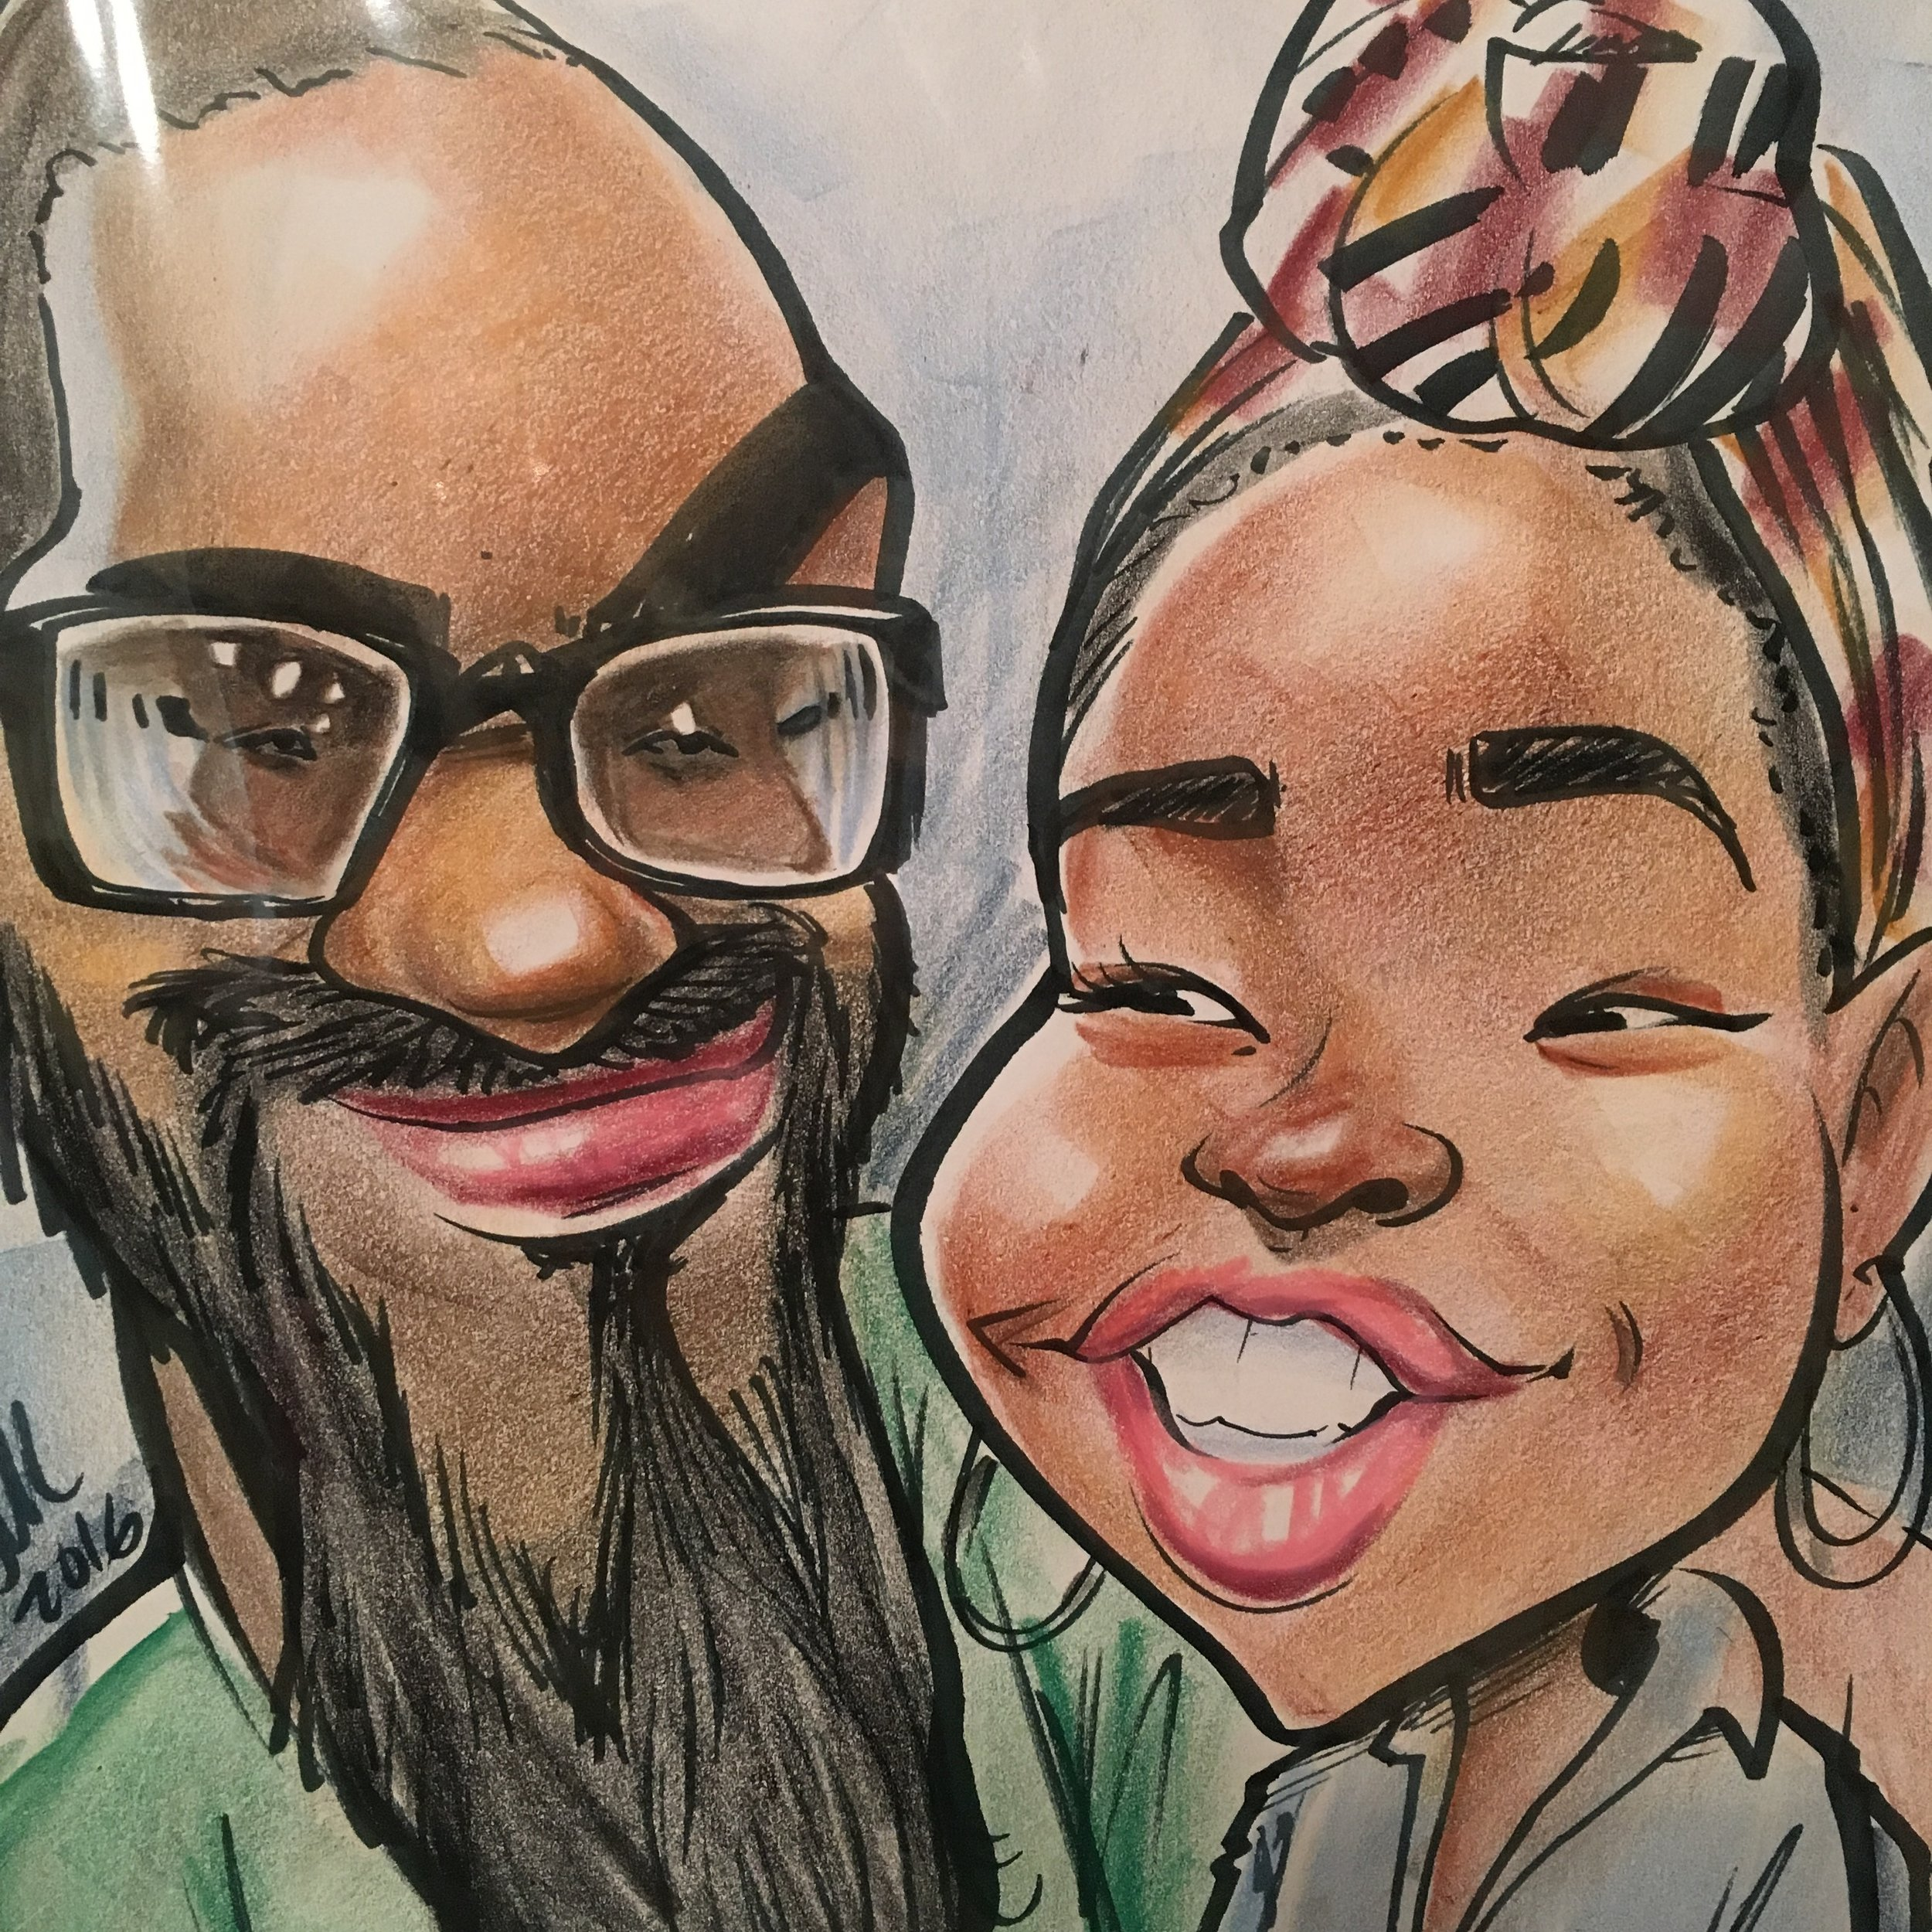 An awesome caricature this guy did of us at the Perry Fair this year when we visited family in GA. (Peep my boo's glasses! Lol)